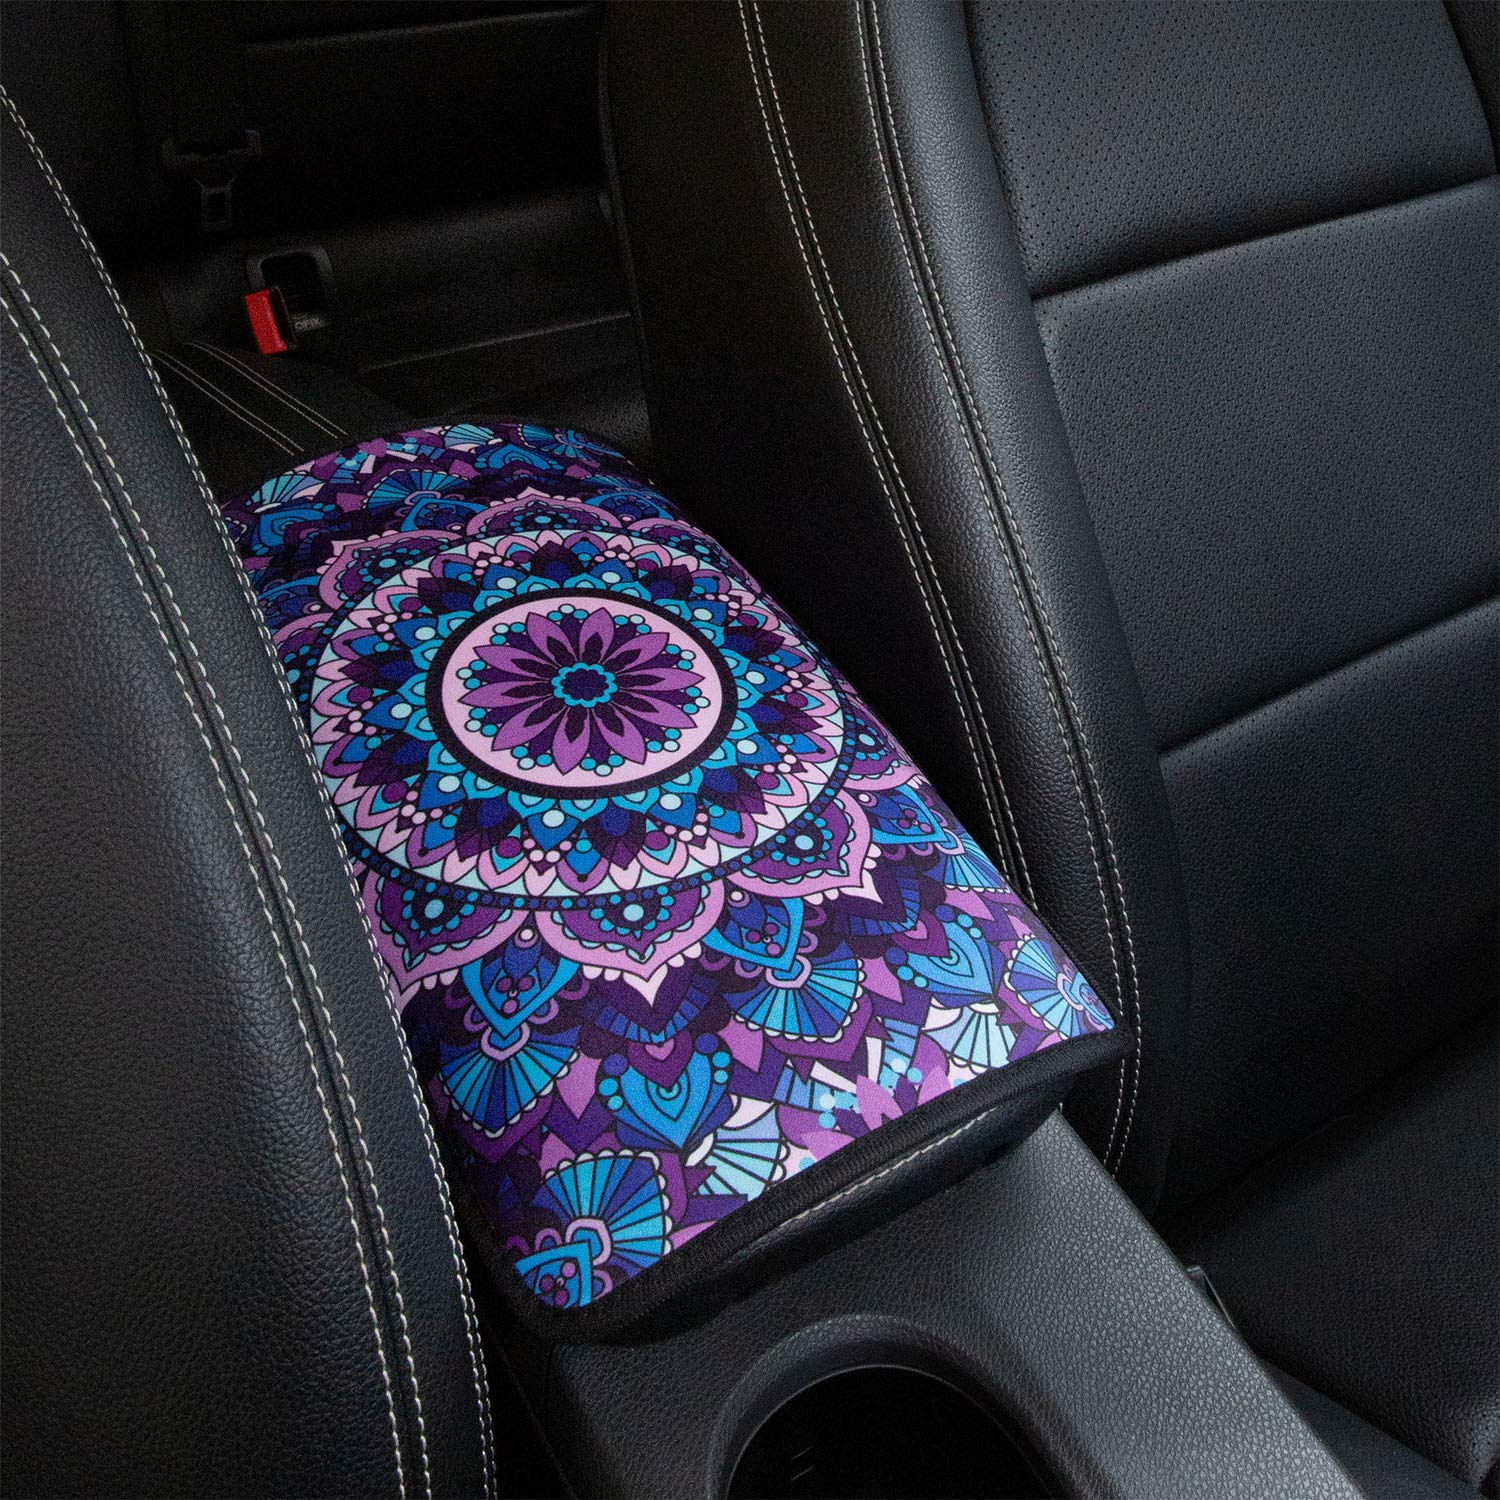 Horeset Beautiful Aqua Flower Car Seat Cover Blue Car Seat Covers Universal fit Women Vehicle Seat Covers for Most of Cars